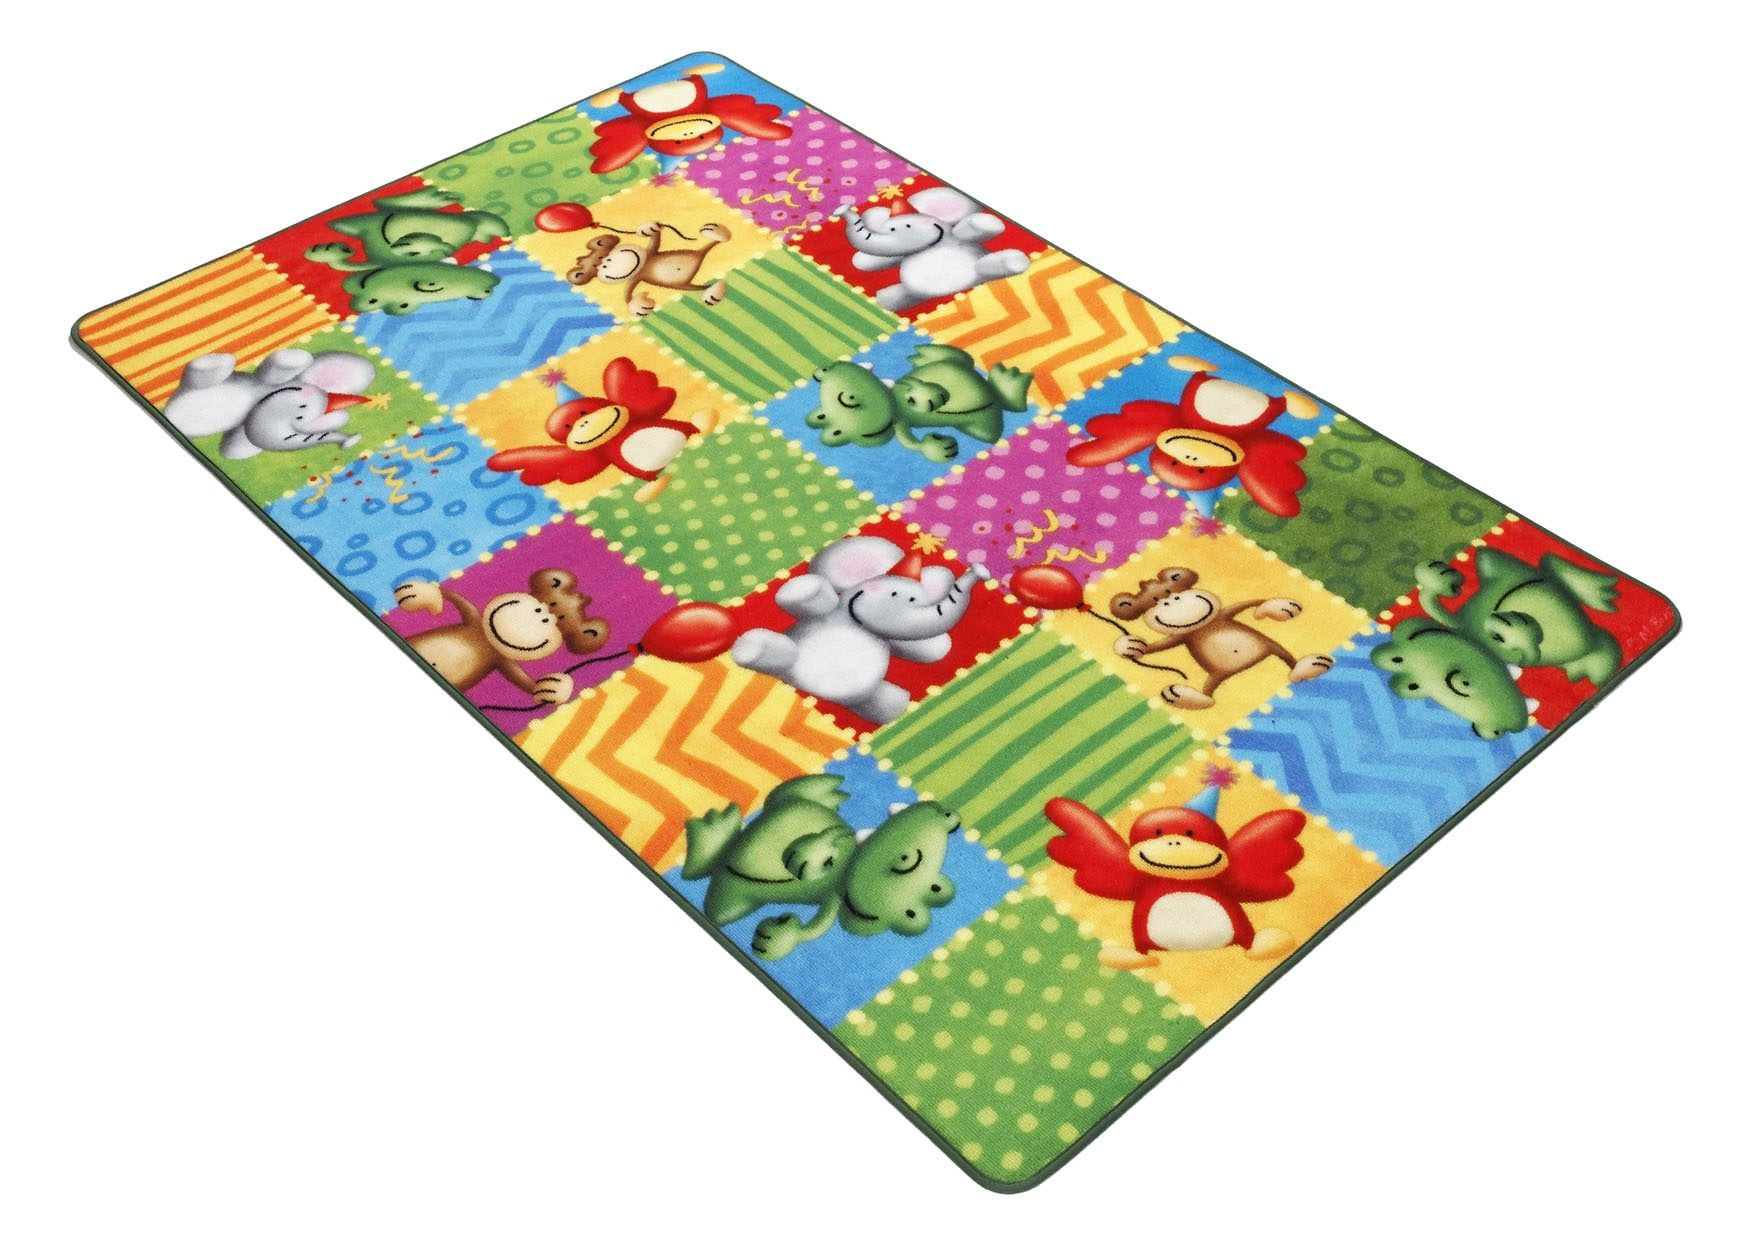 Kinderteppich, Böing Carpet, »Lovely Kids LK-5«, rutschhemmend beschichtet